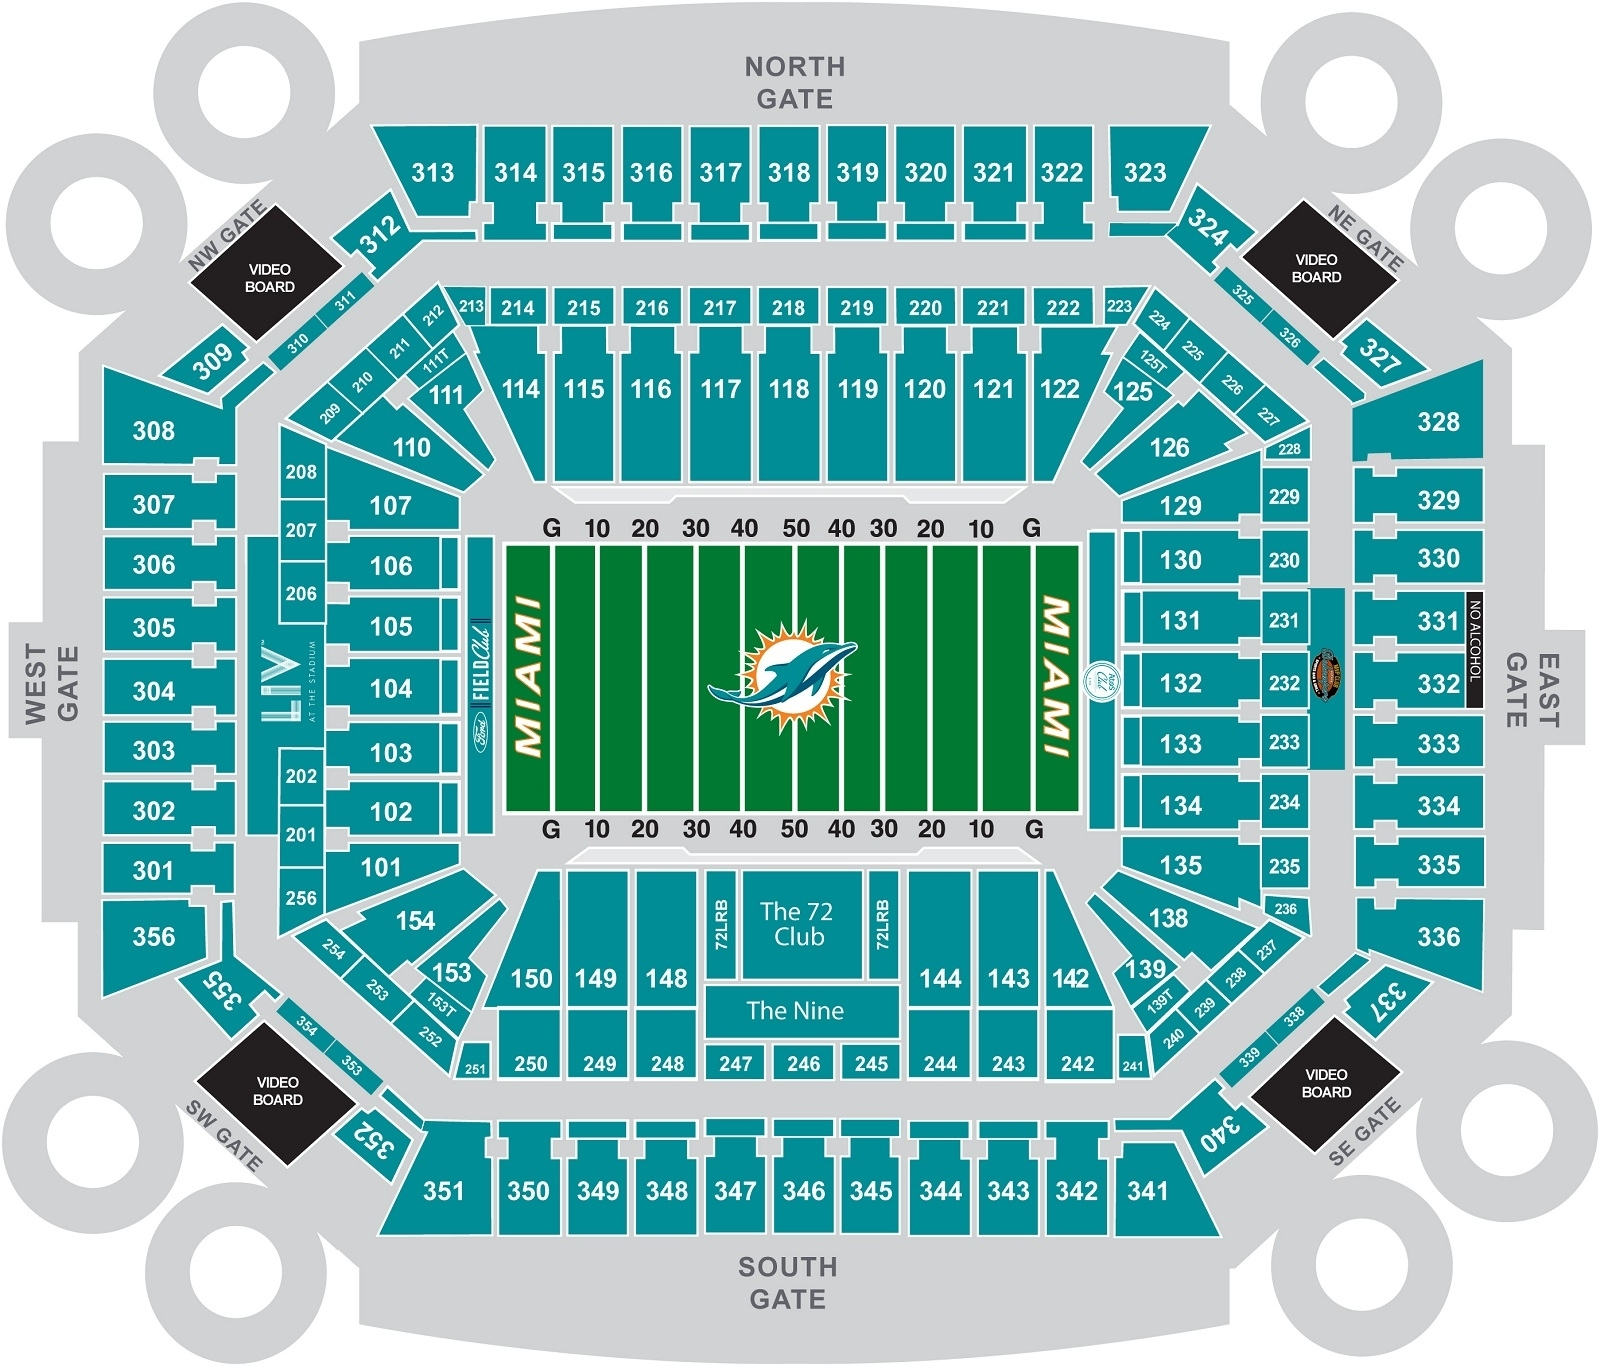 2020 Super Bowl Seating Chart | February 2, 2020 | Fan within Super Bowl 53 Seating Capacity